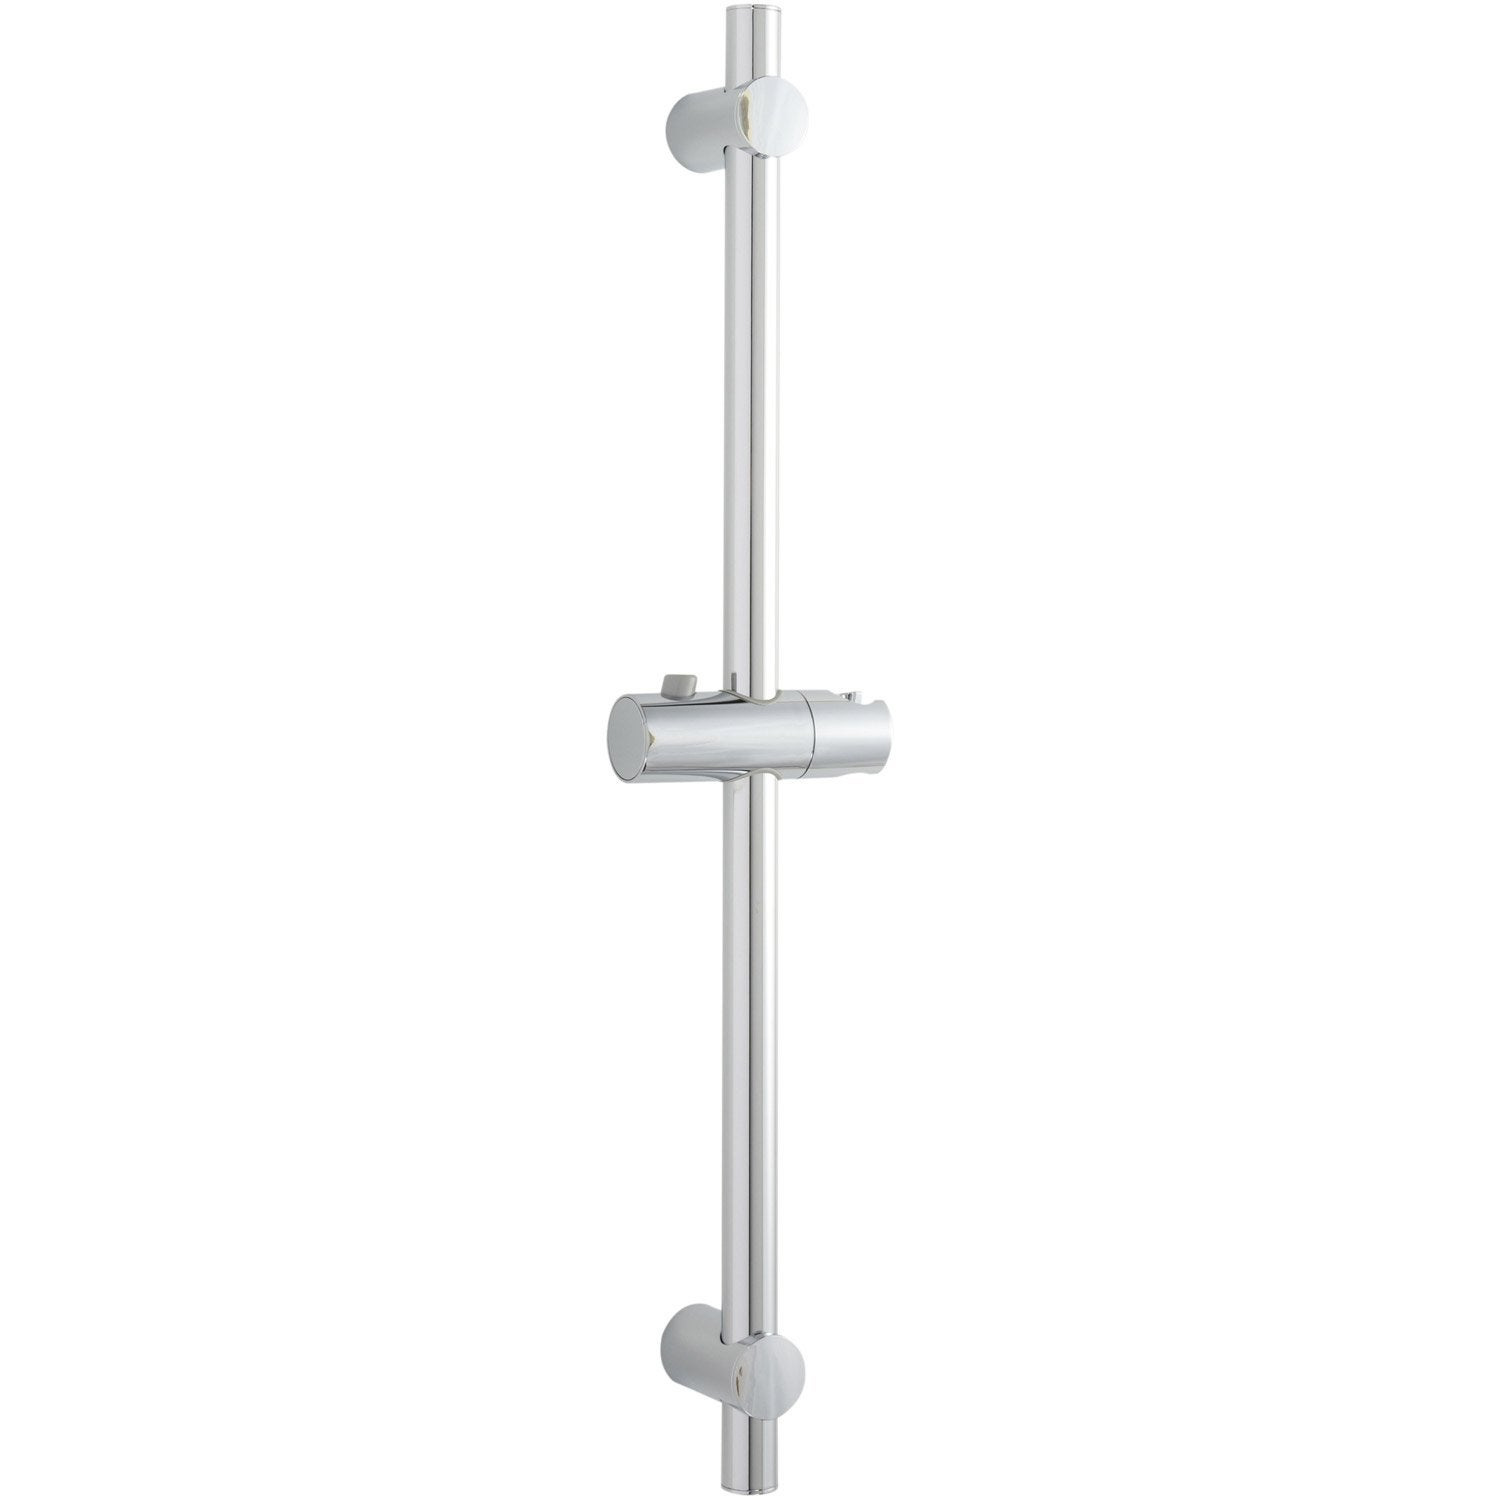 Barre de douche chrome sensea ikka leroy merlin - Barre de douche leroy merlin ...